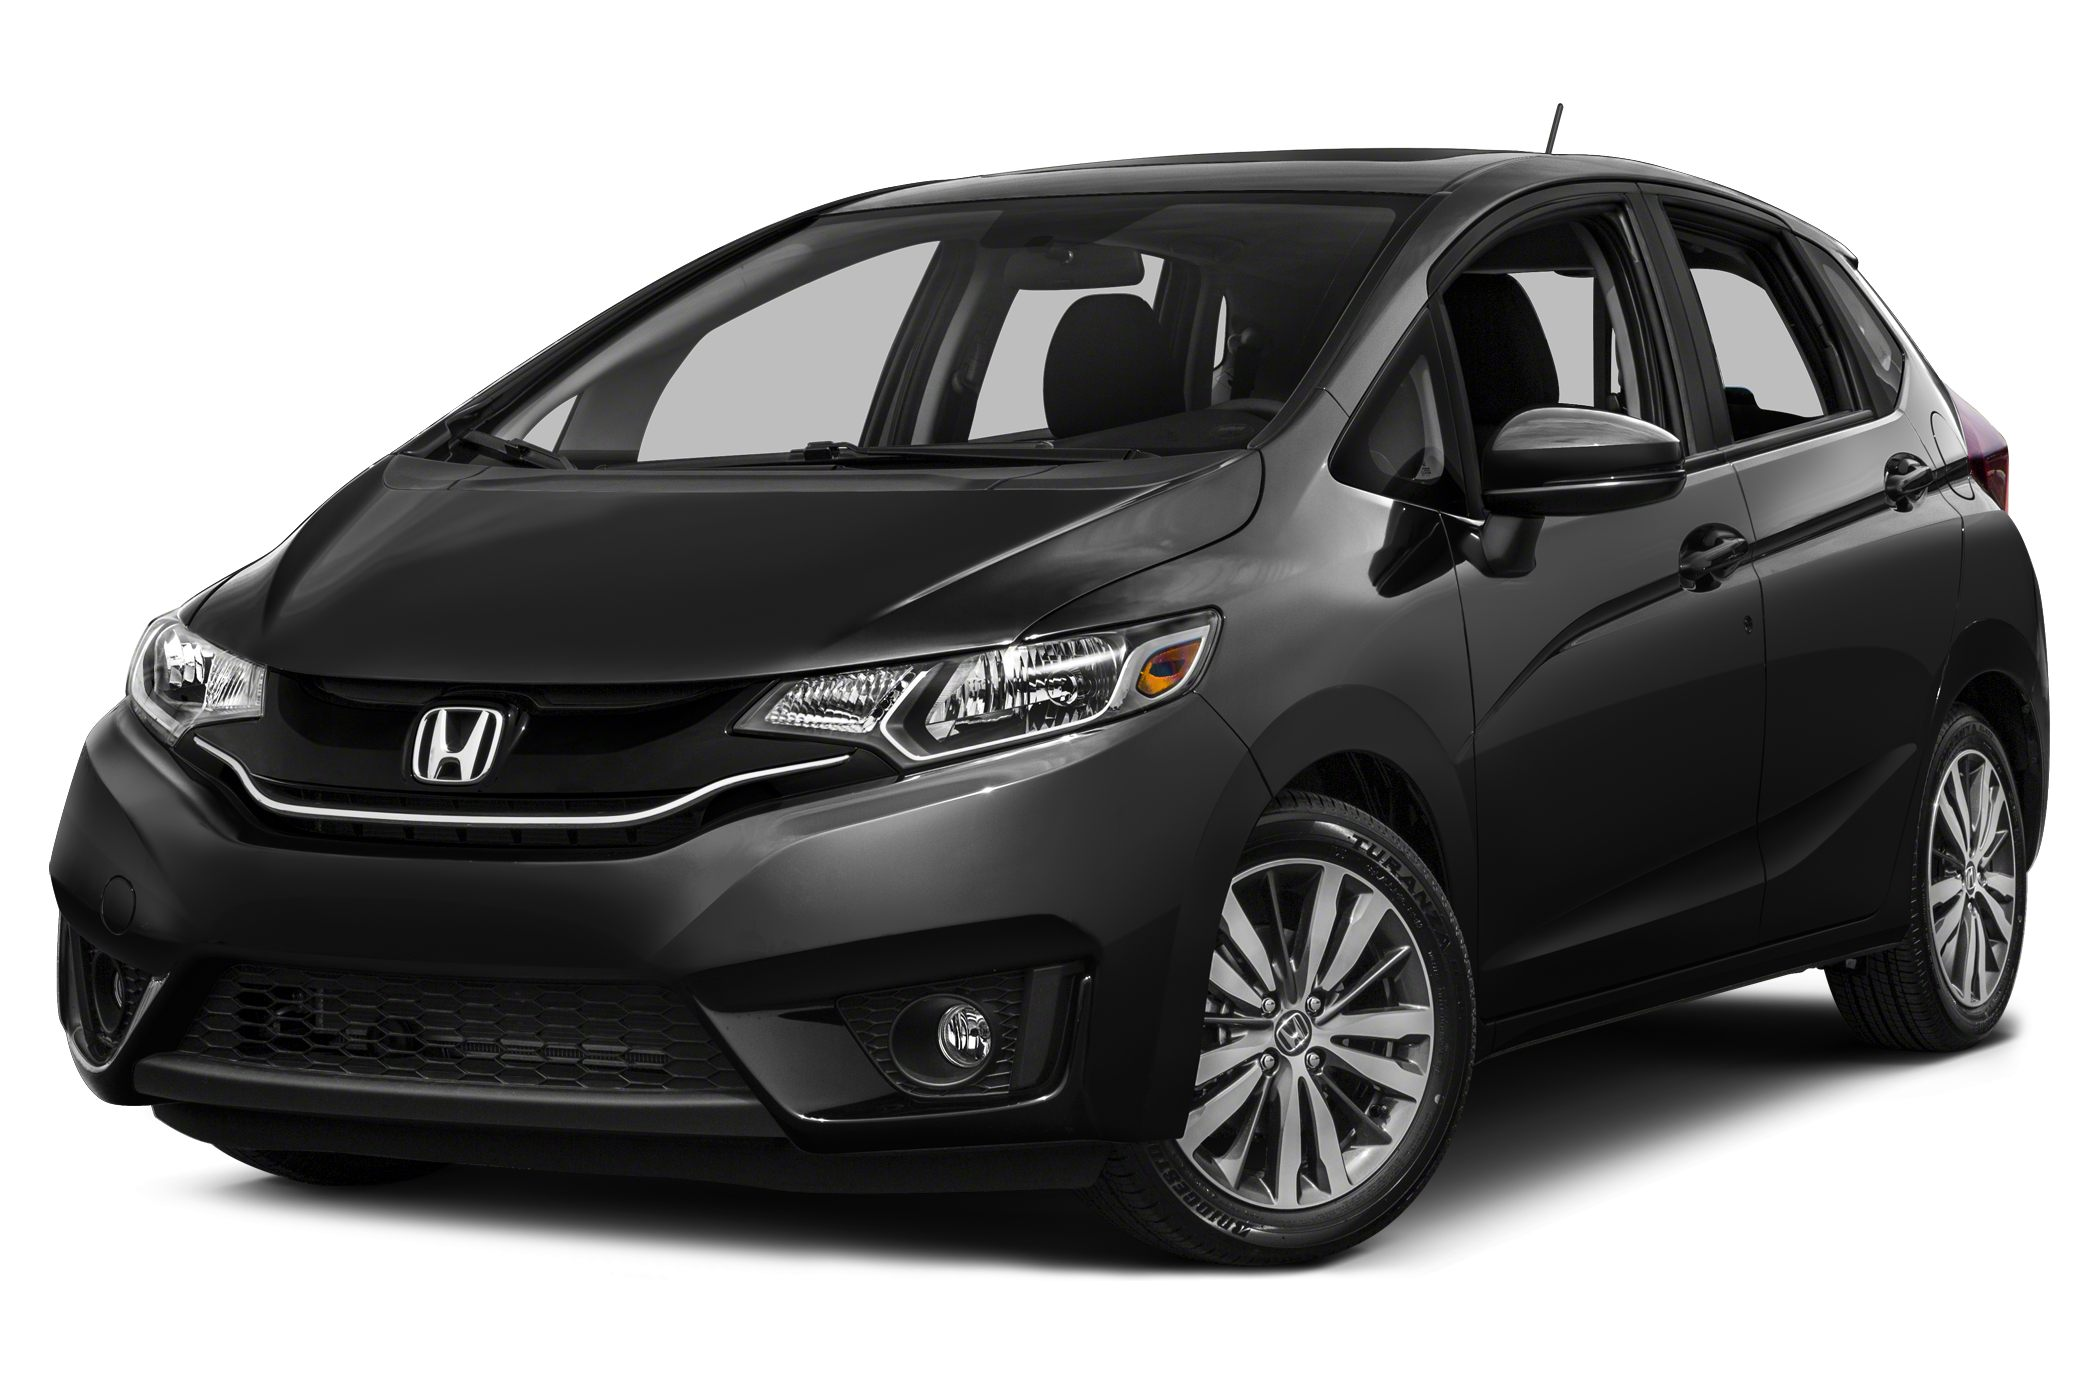 2015 Honda Fit LX Hatchback for sale in Eugene for $16,470 with 4 miles.